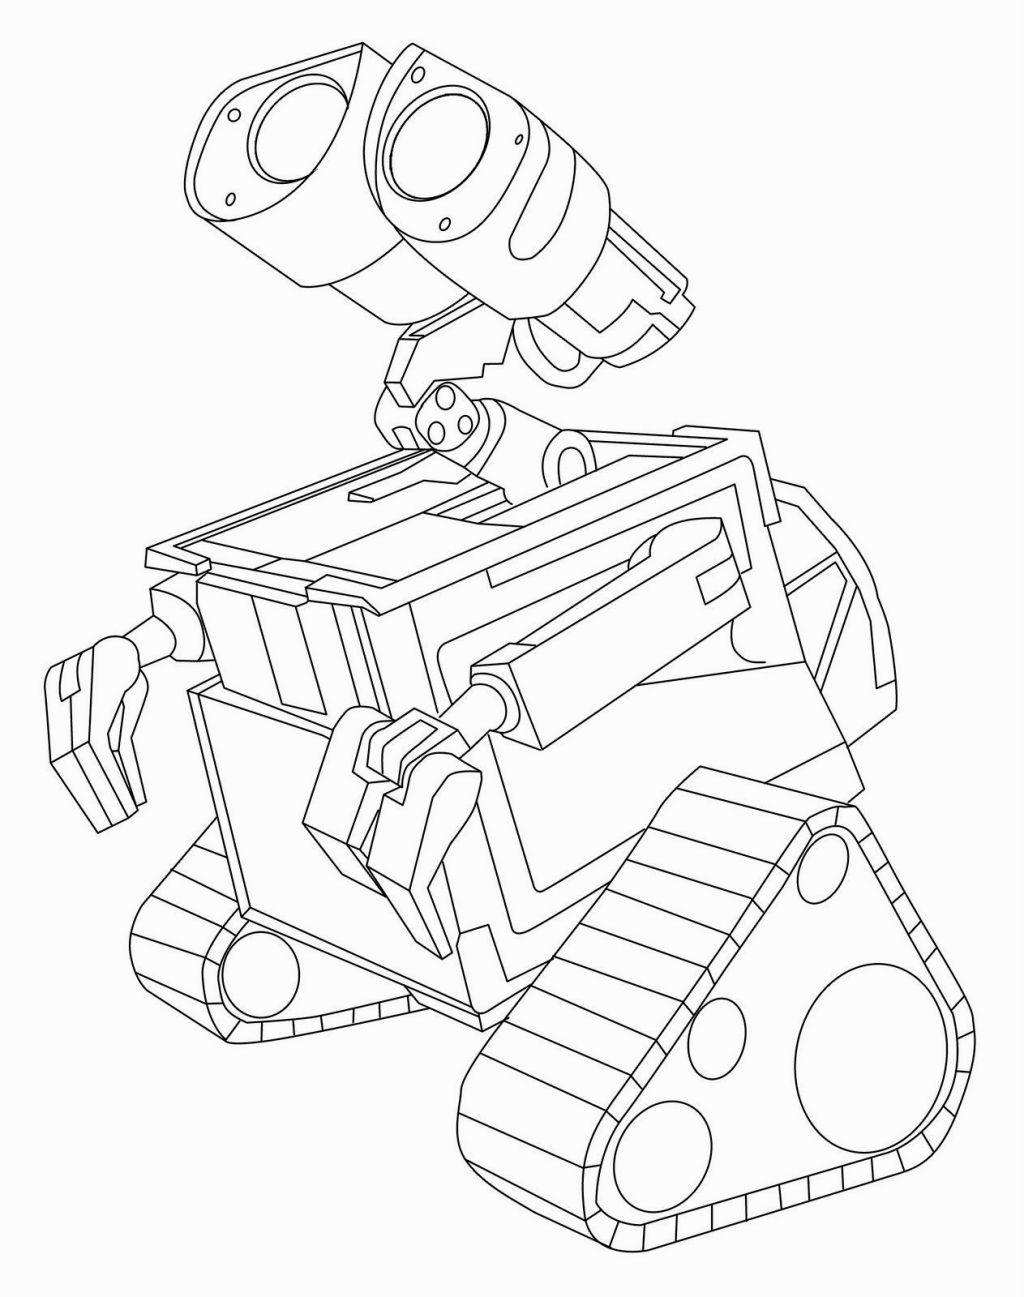 Wall E Coloring Page Disney Coloring Pages Free Kids Coloring